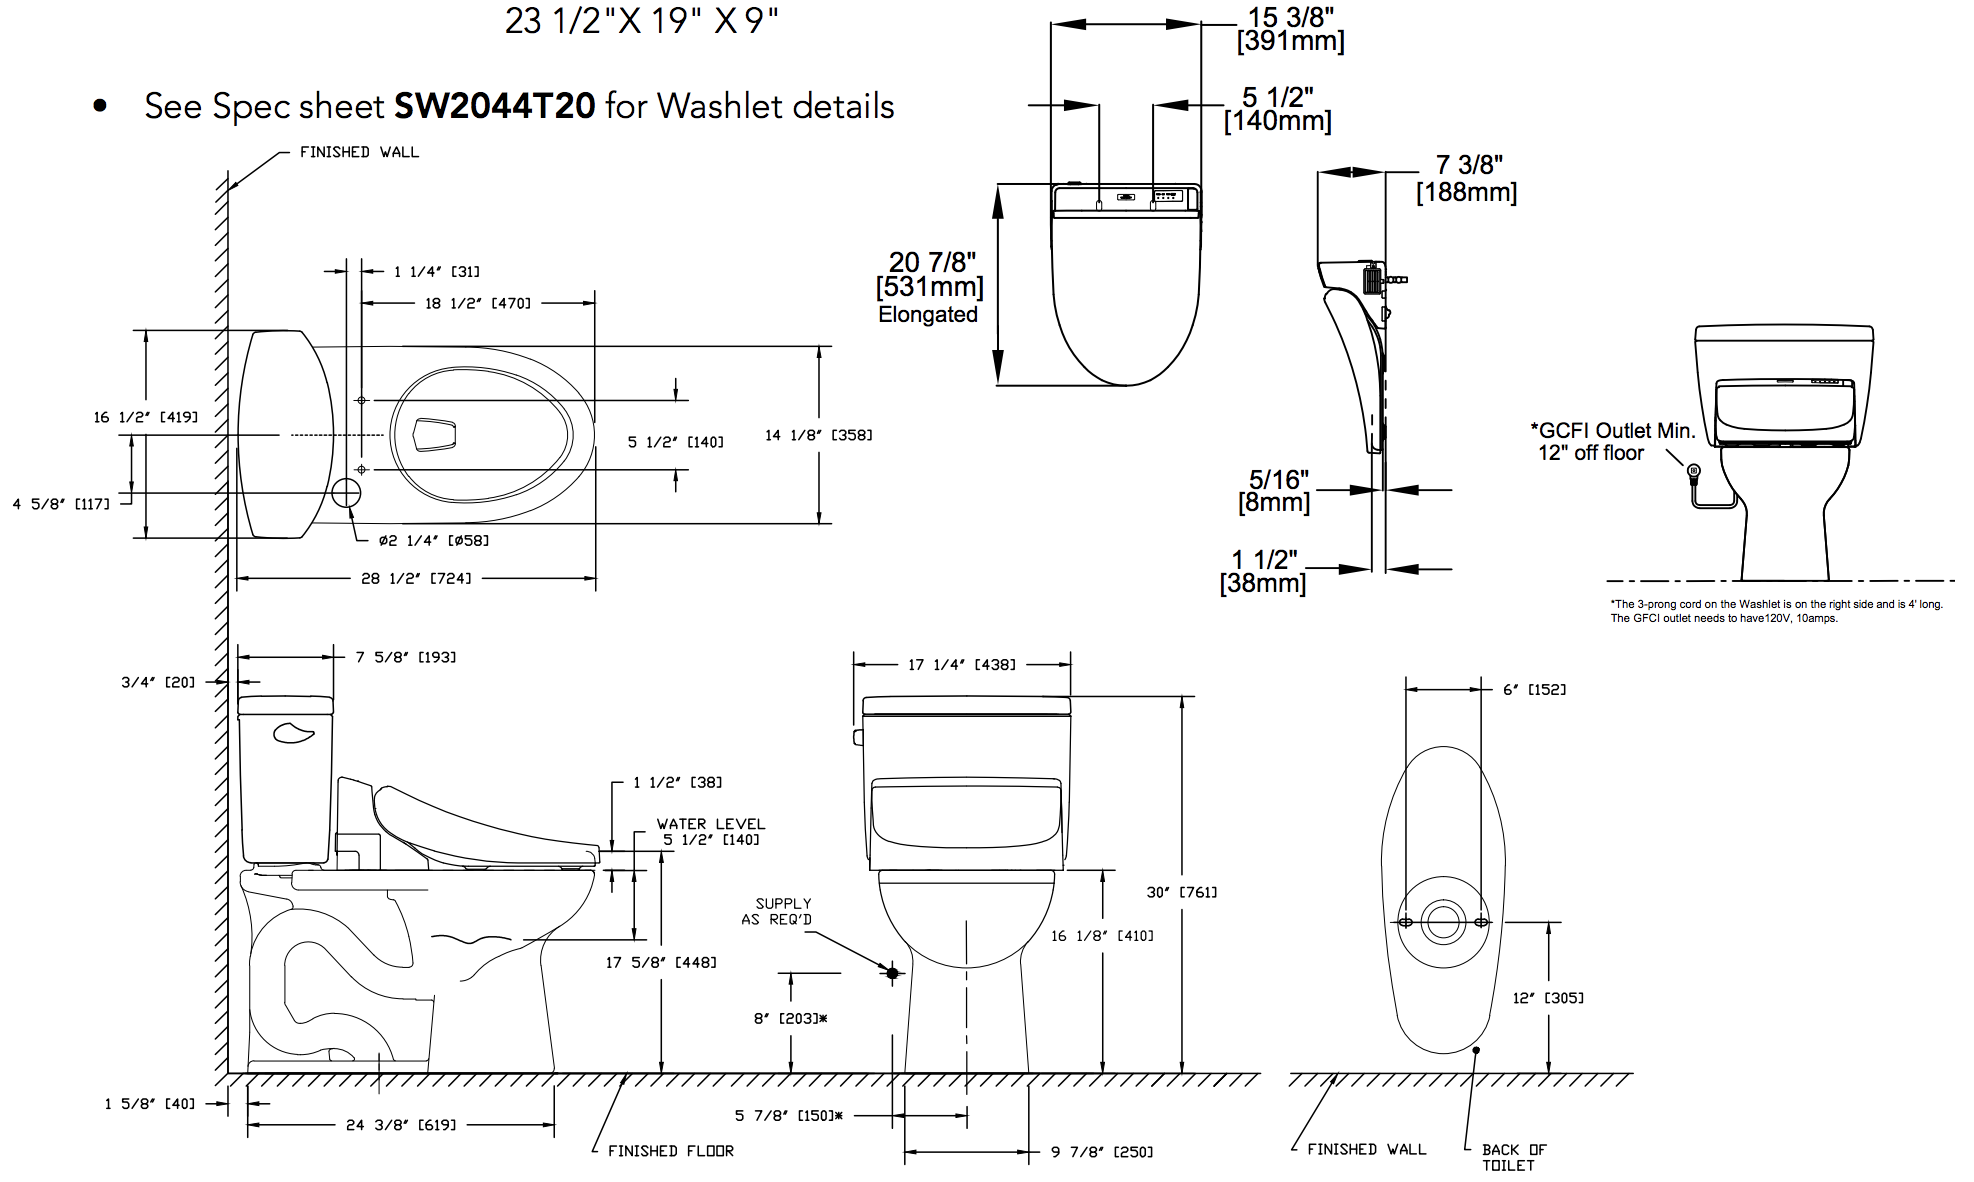 drake-ii-washlet-c200-two-piece-toilet-1.28-gpf-diagram.png